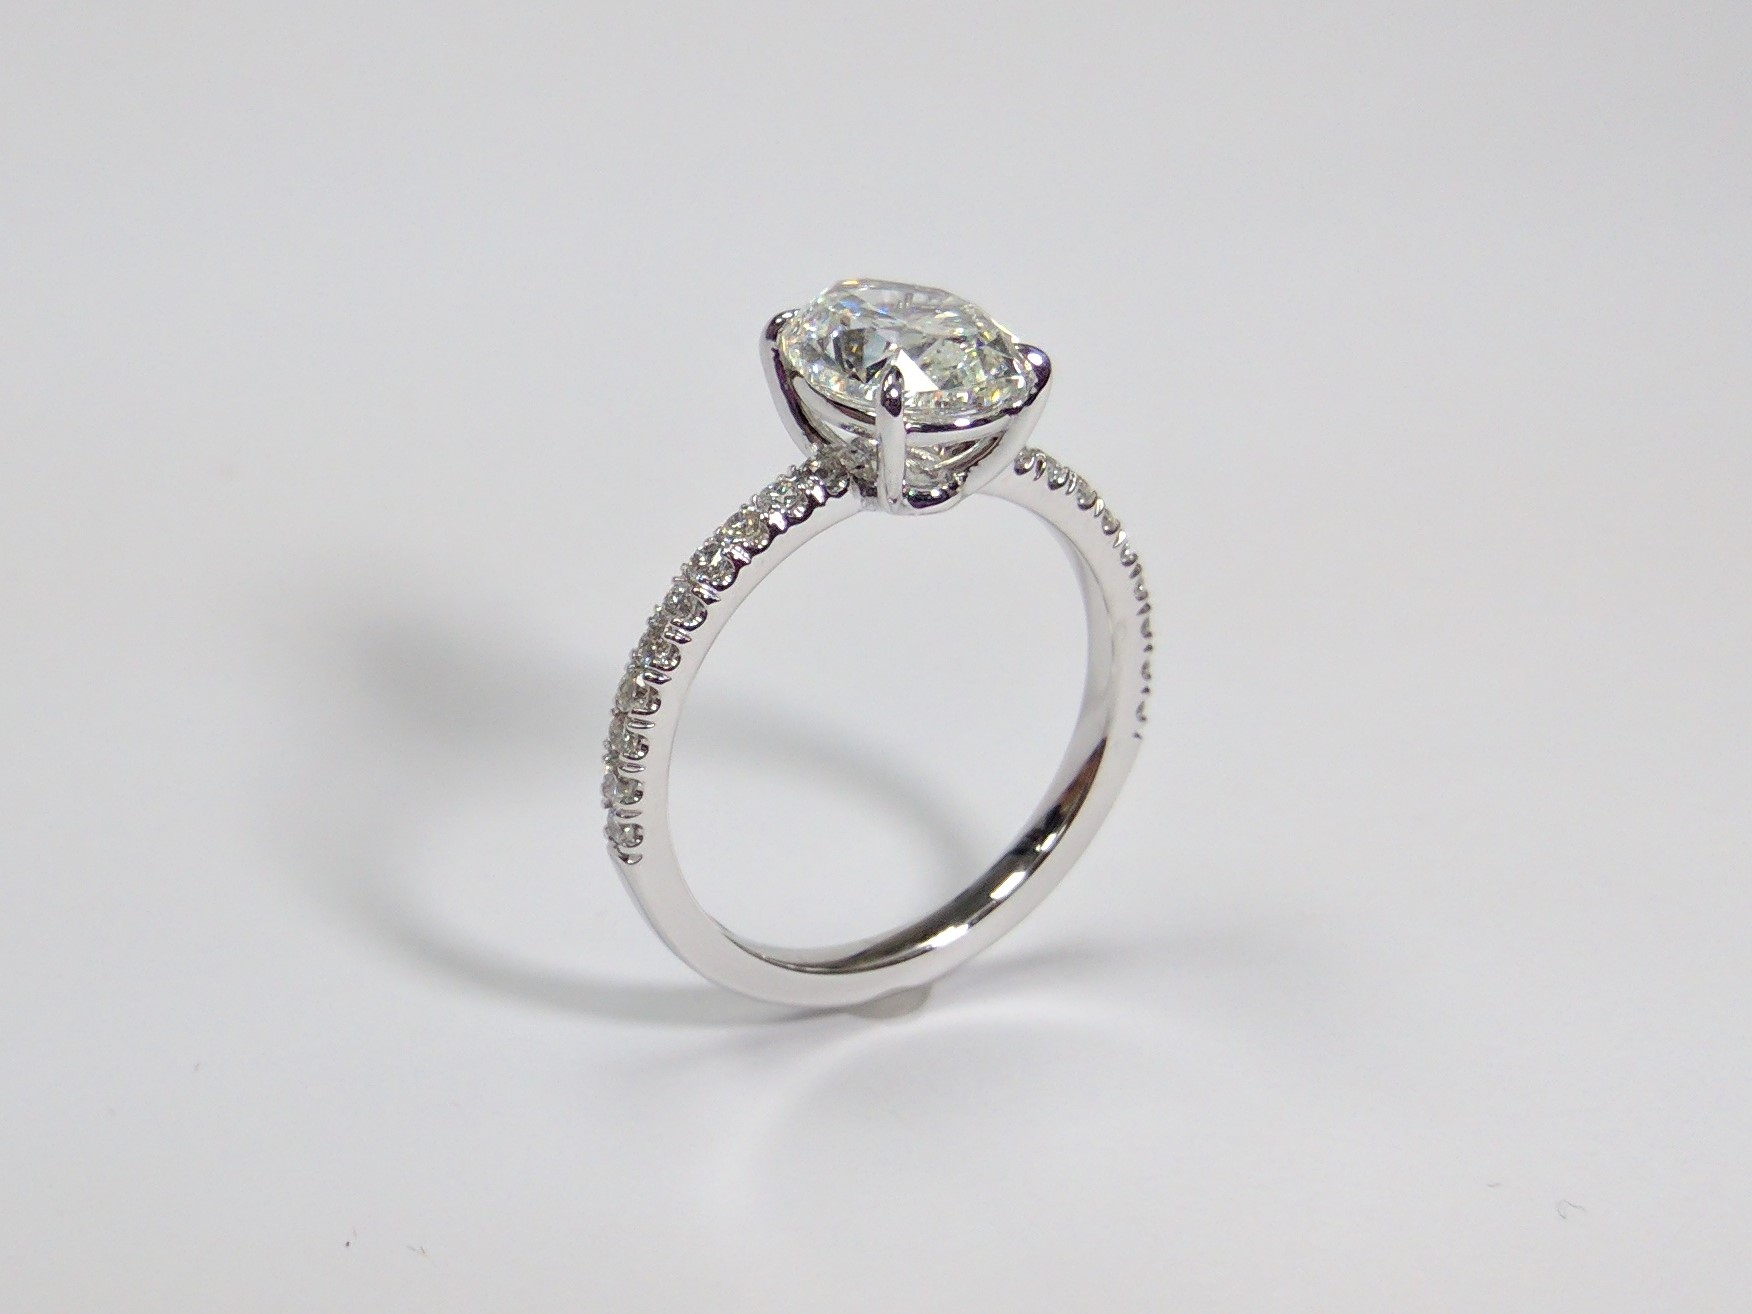 ring size bezel on hand round fb halo profile palladium engagement star dust low diamond products rings dsc moissanite wedding